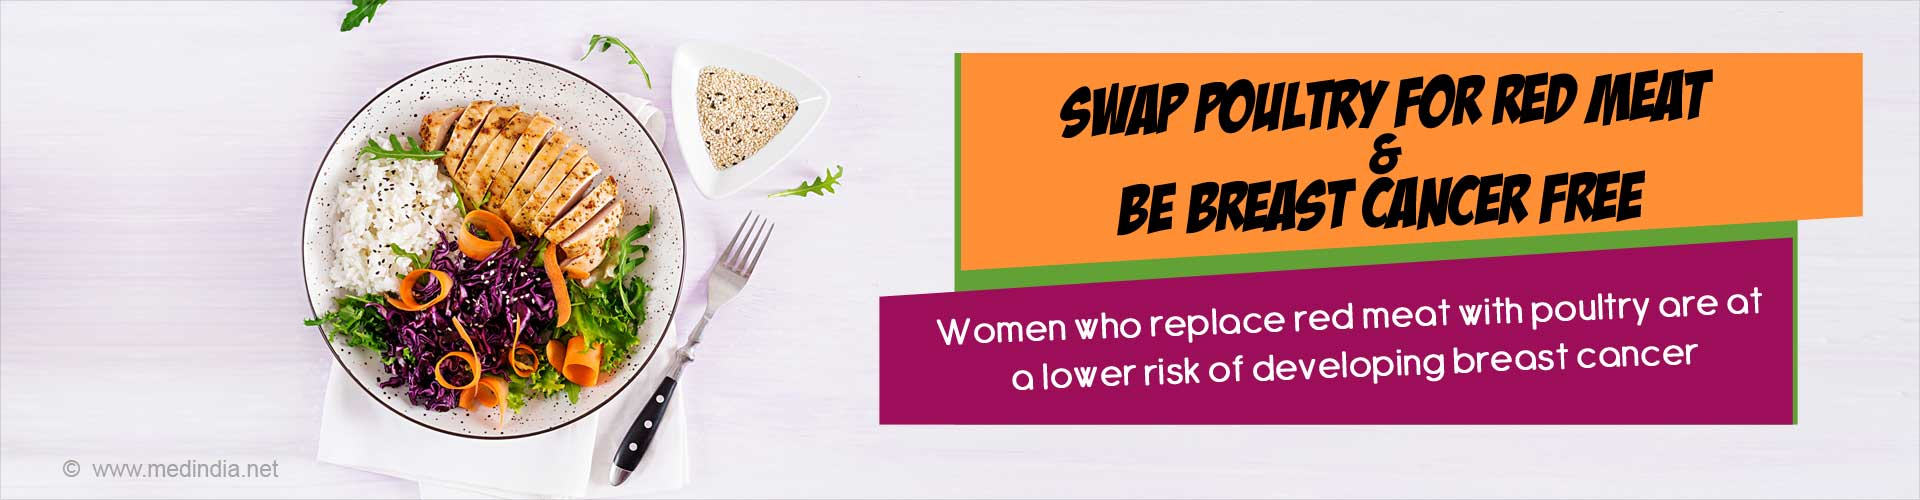 Swap Poultry for Red Meat to Fight Breast Cancer